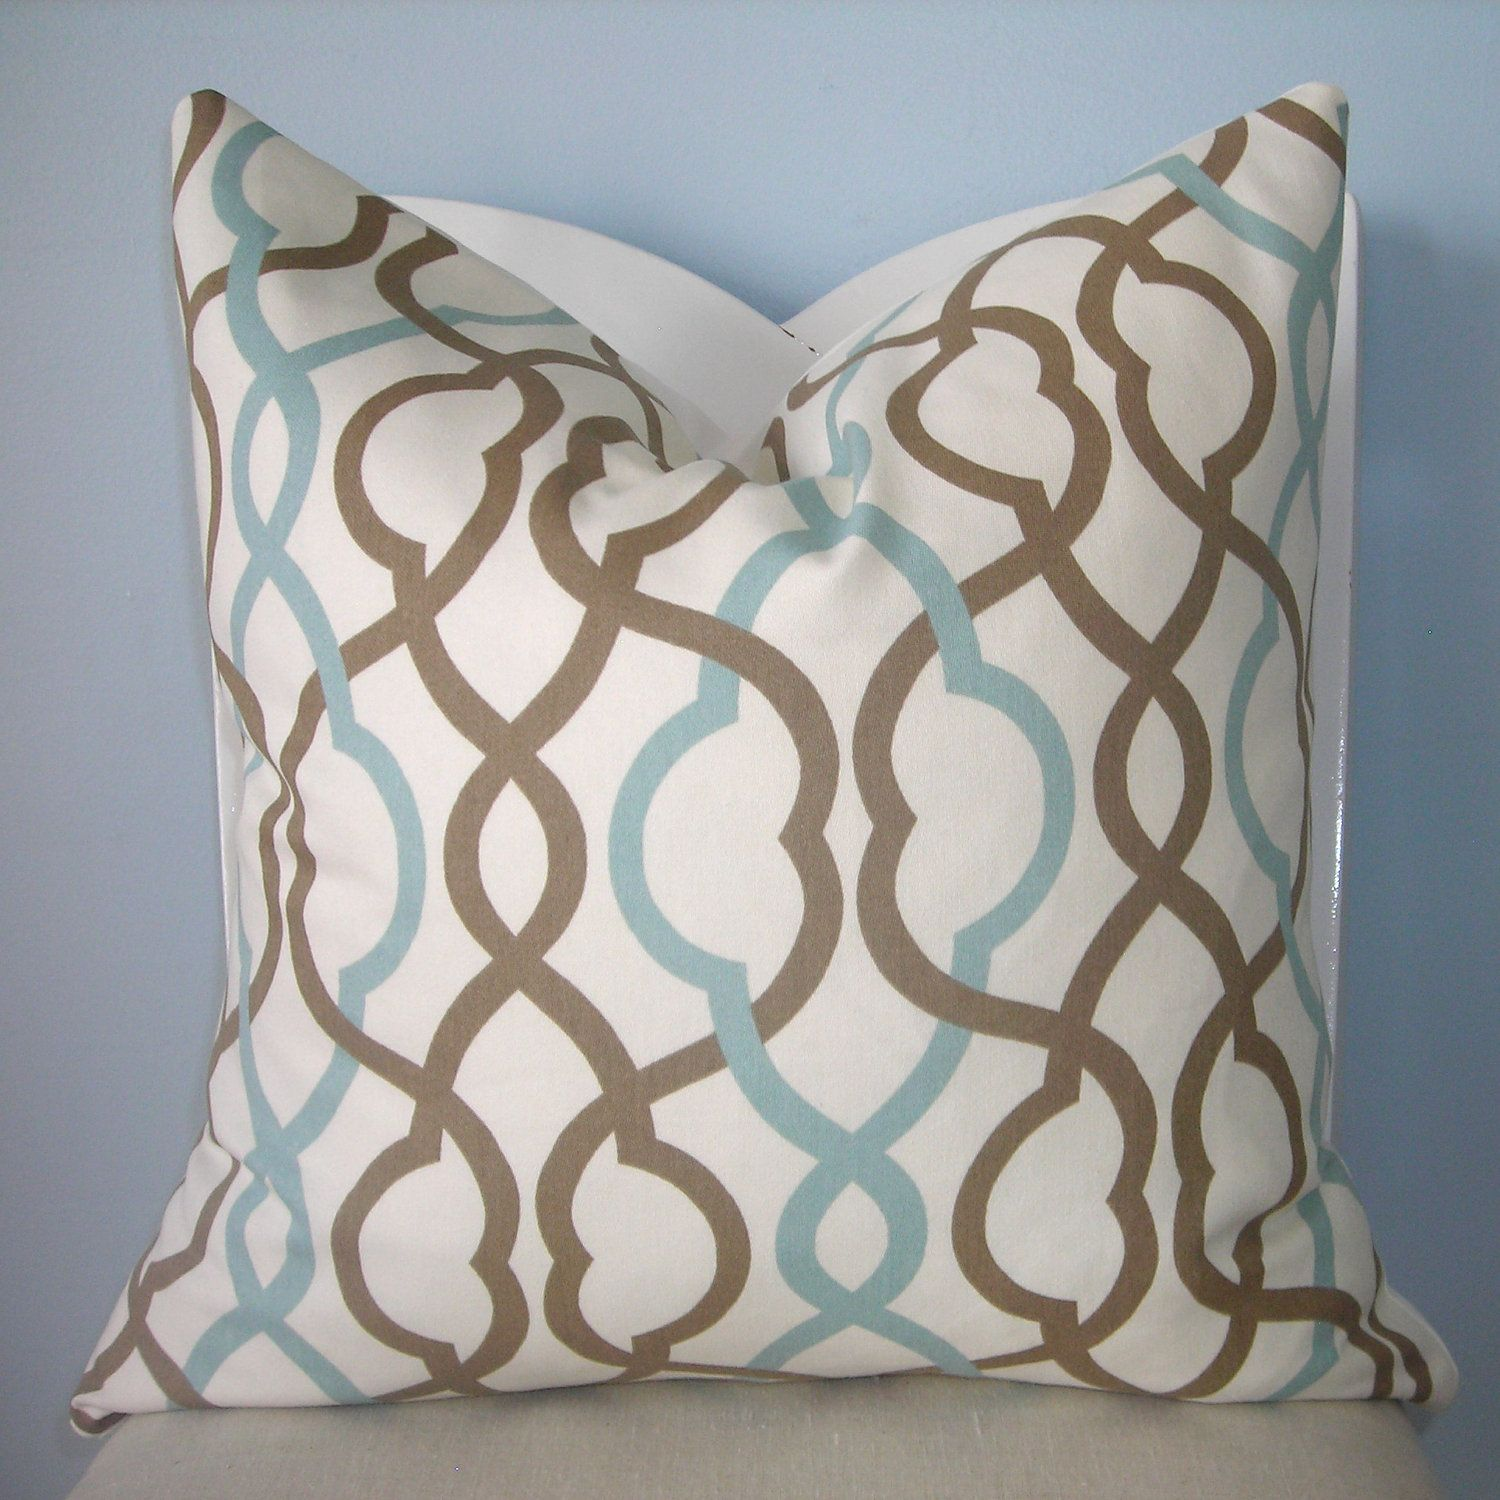 1000 images about Pillows on PinterestBlue pillow covers